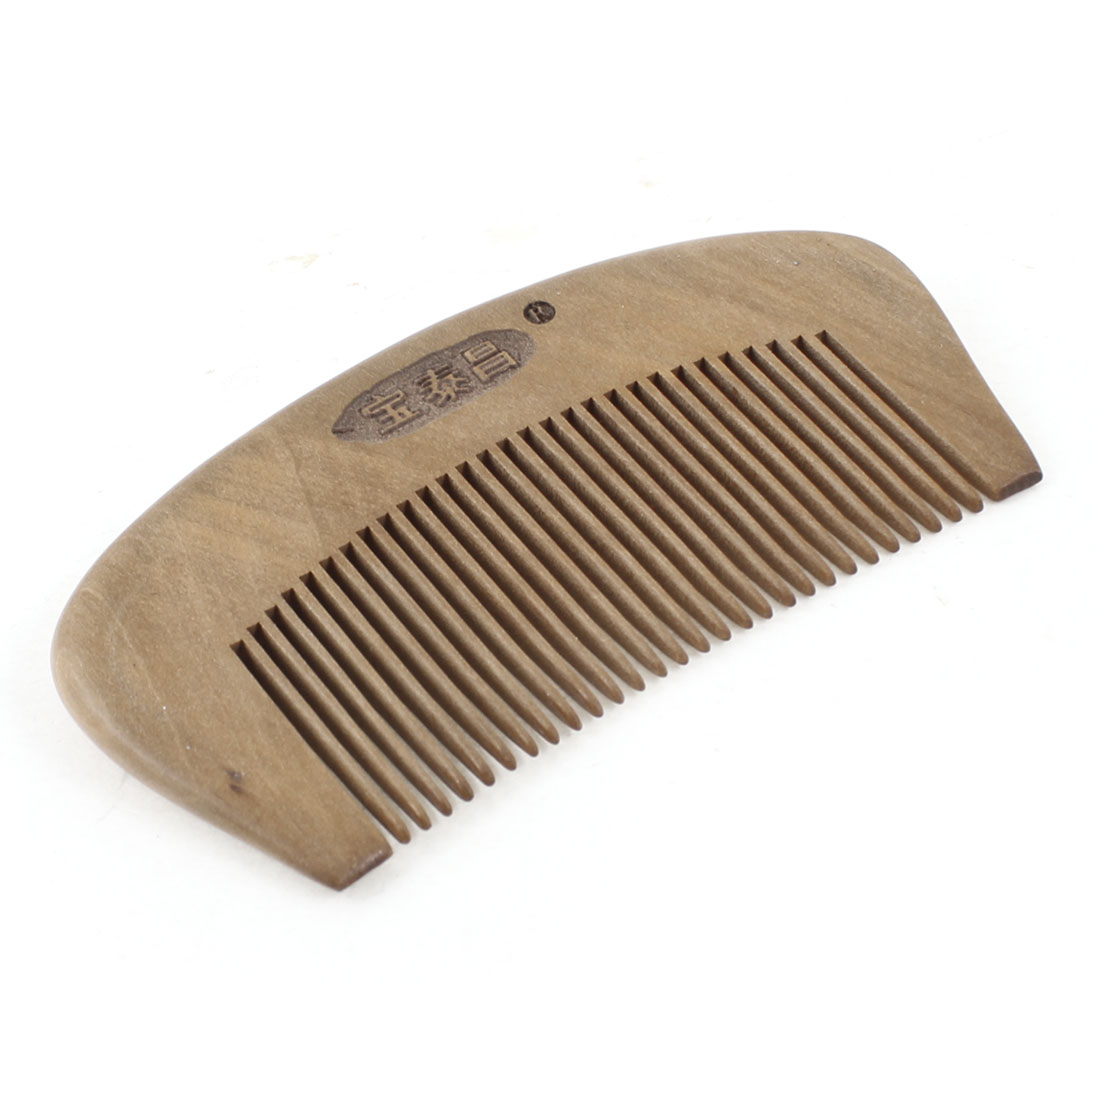 "4.1"" Portable Natural Scented Sandal Wood Hair Care Comb"